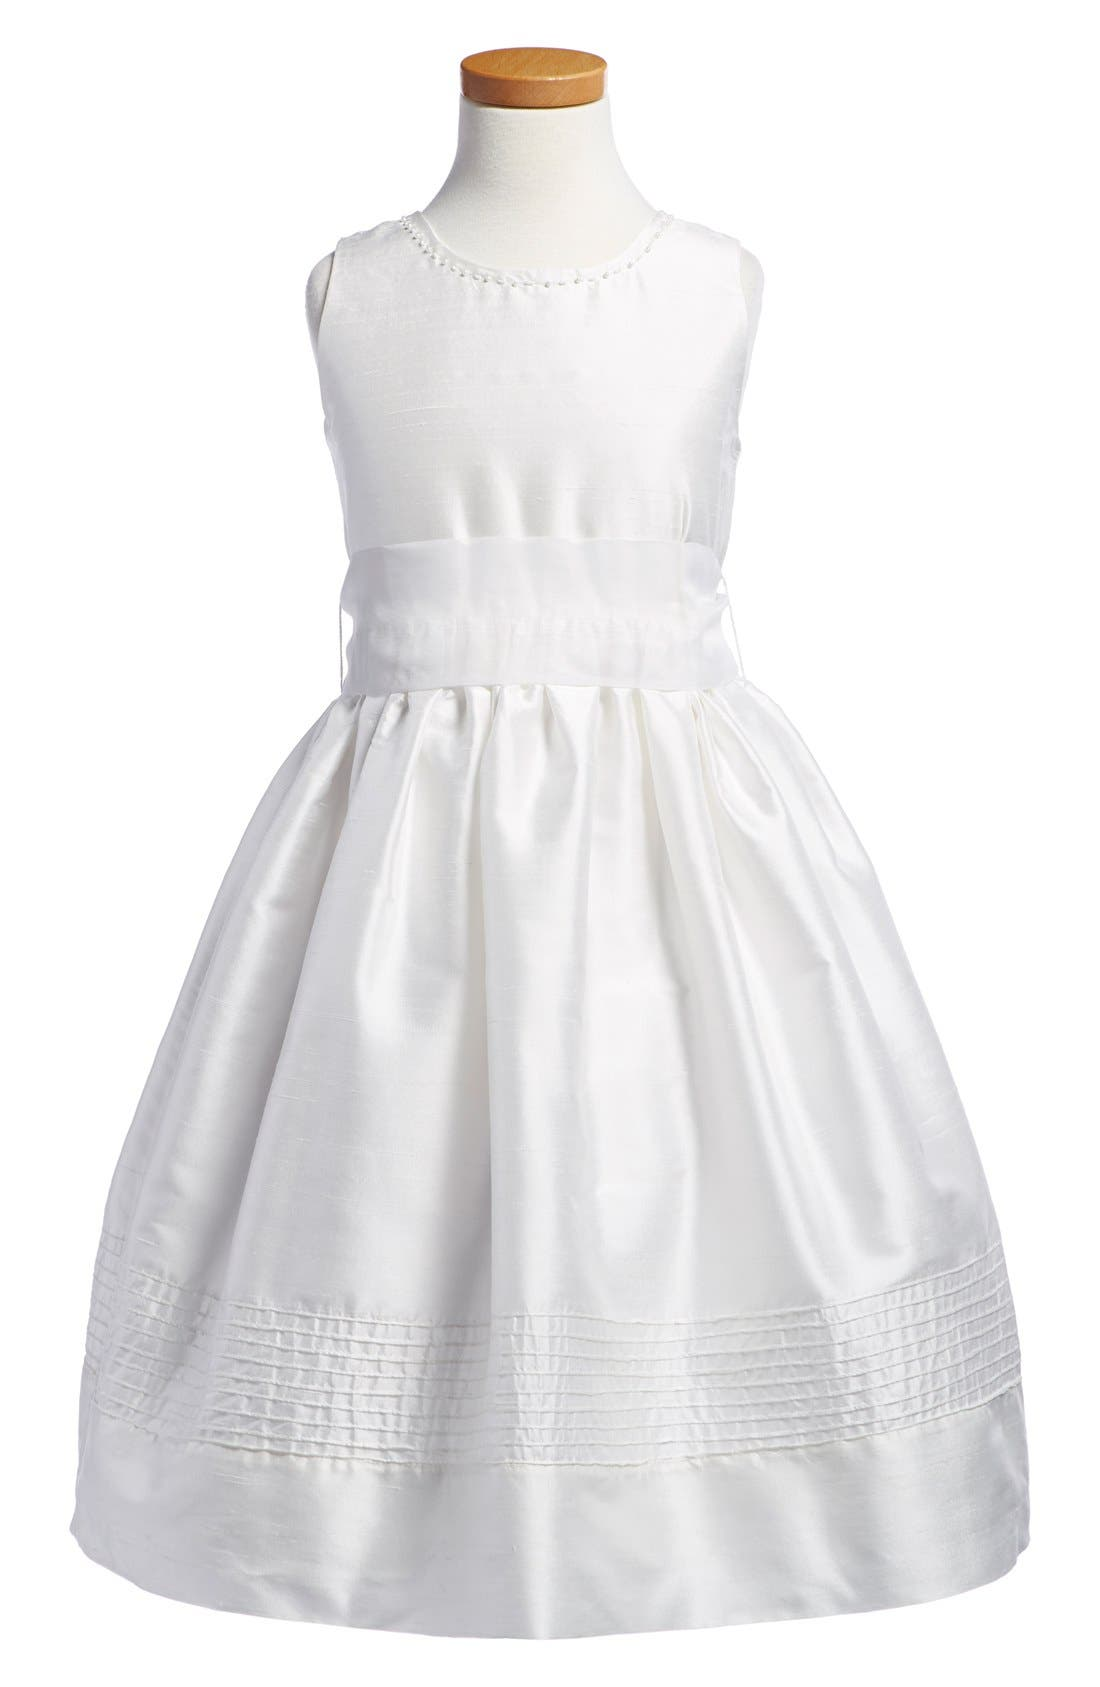 Alternate Image 1 Selected - Isabel Garreton 'Melody' Sleeveless Dress (Little Girls & Big Girls)